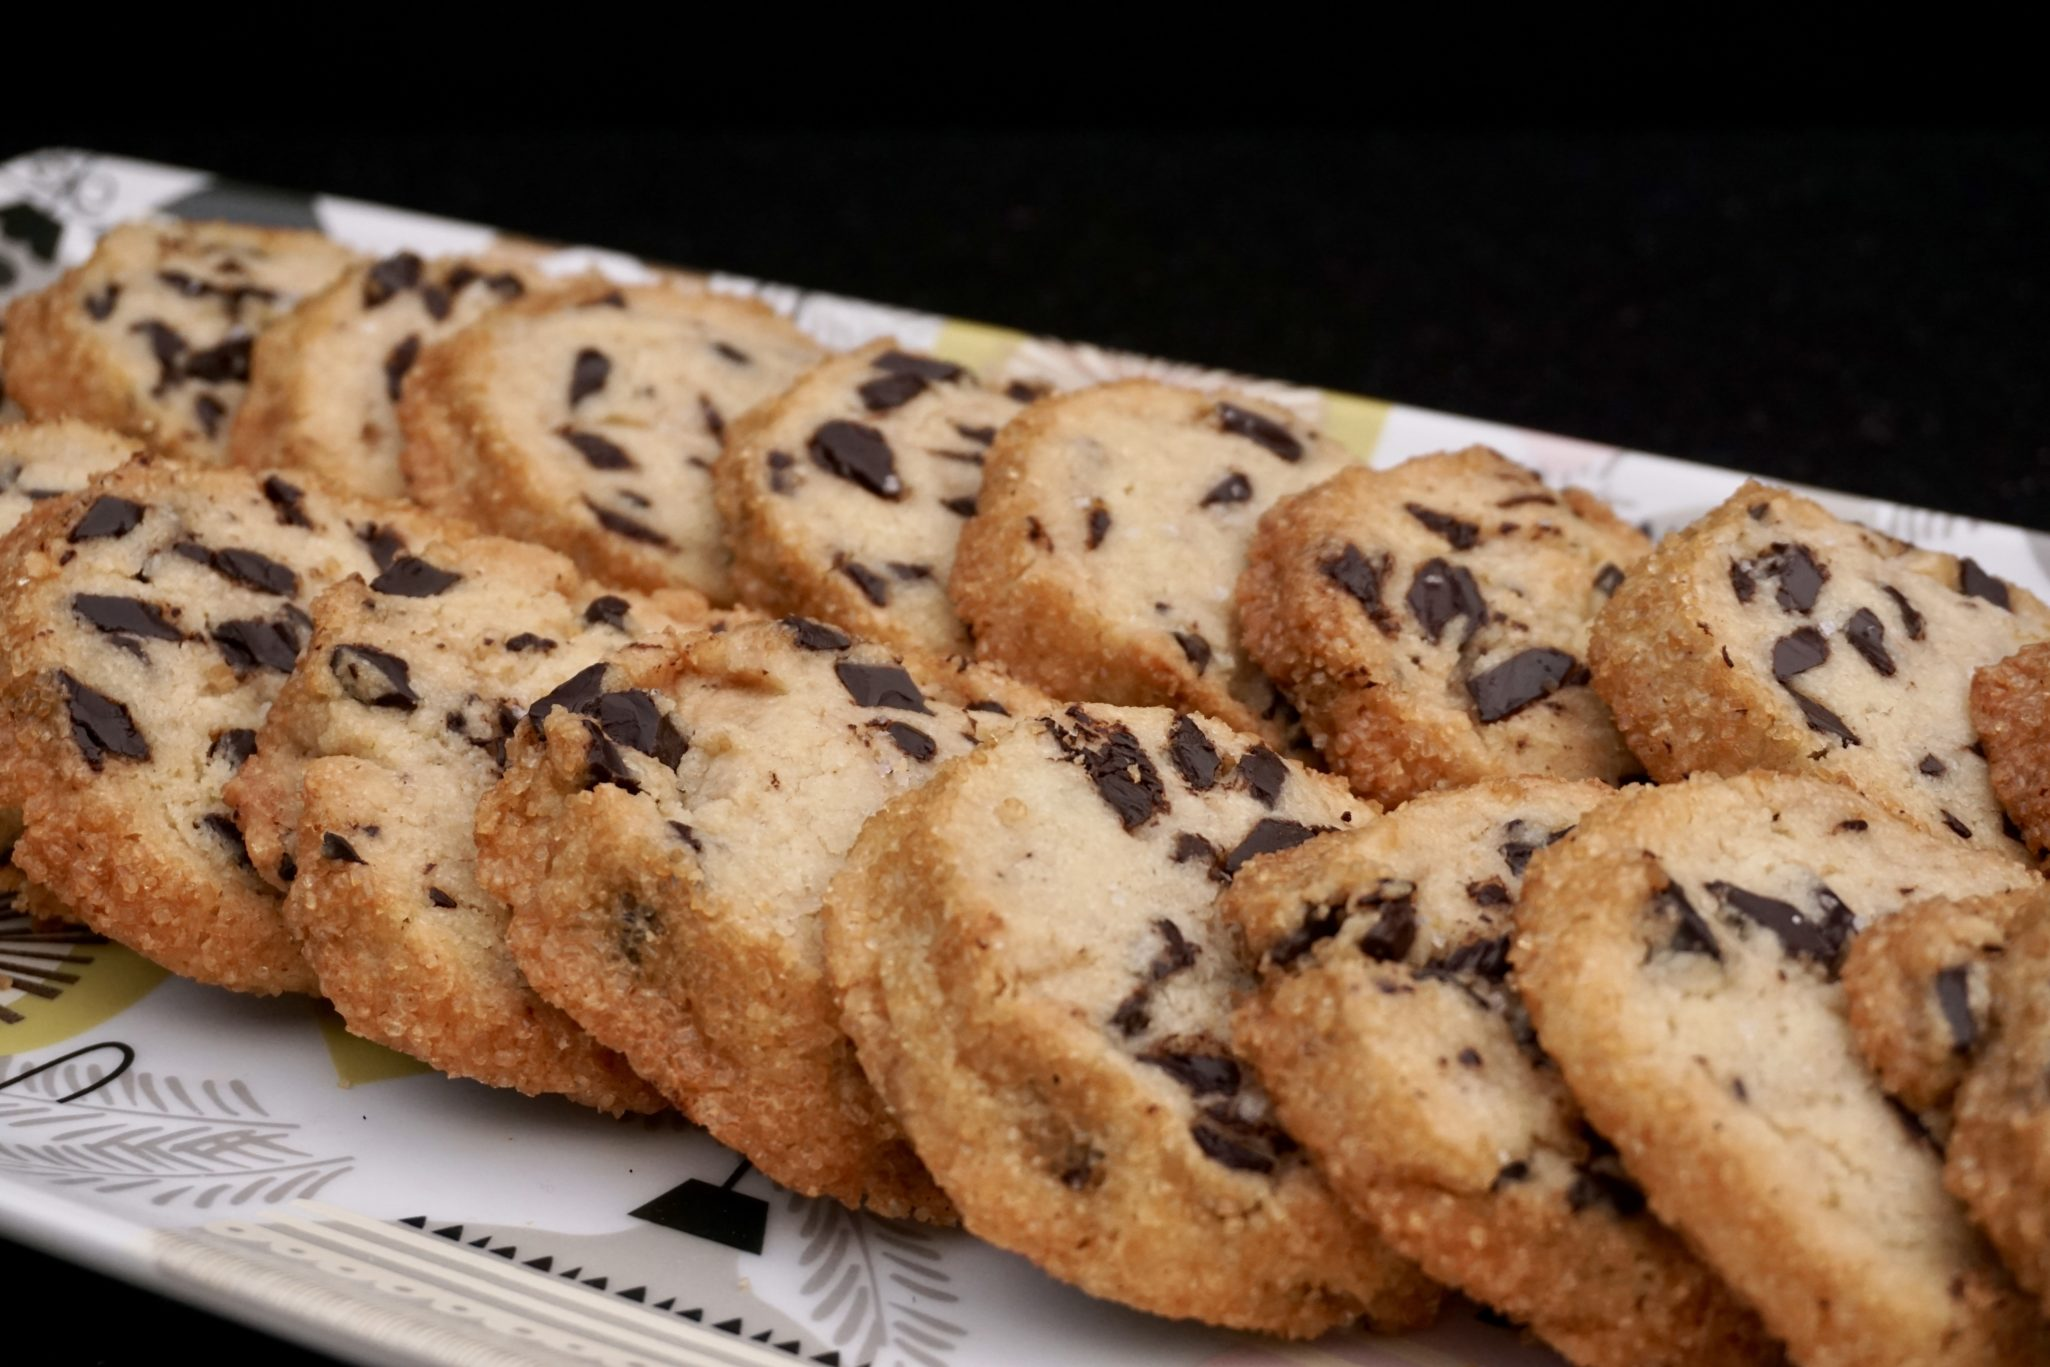 Salted Butter & Chocolate Chunk Shortbread (New Year's Resolution #2: Finish 12 Days of Cookies)